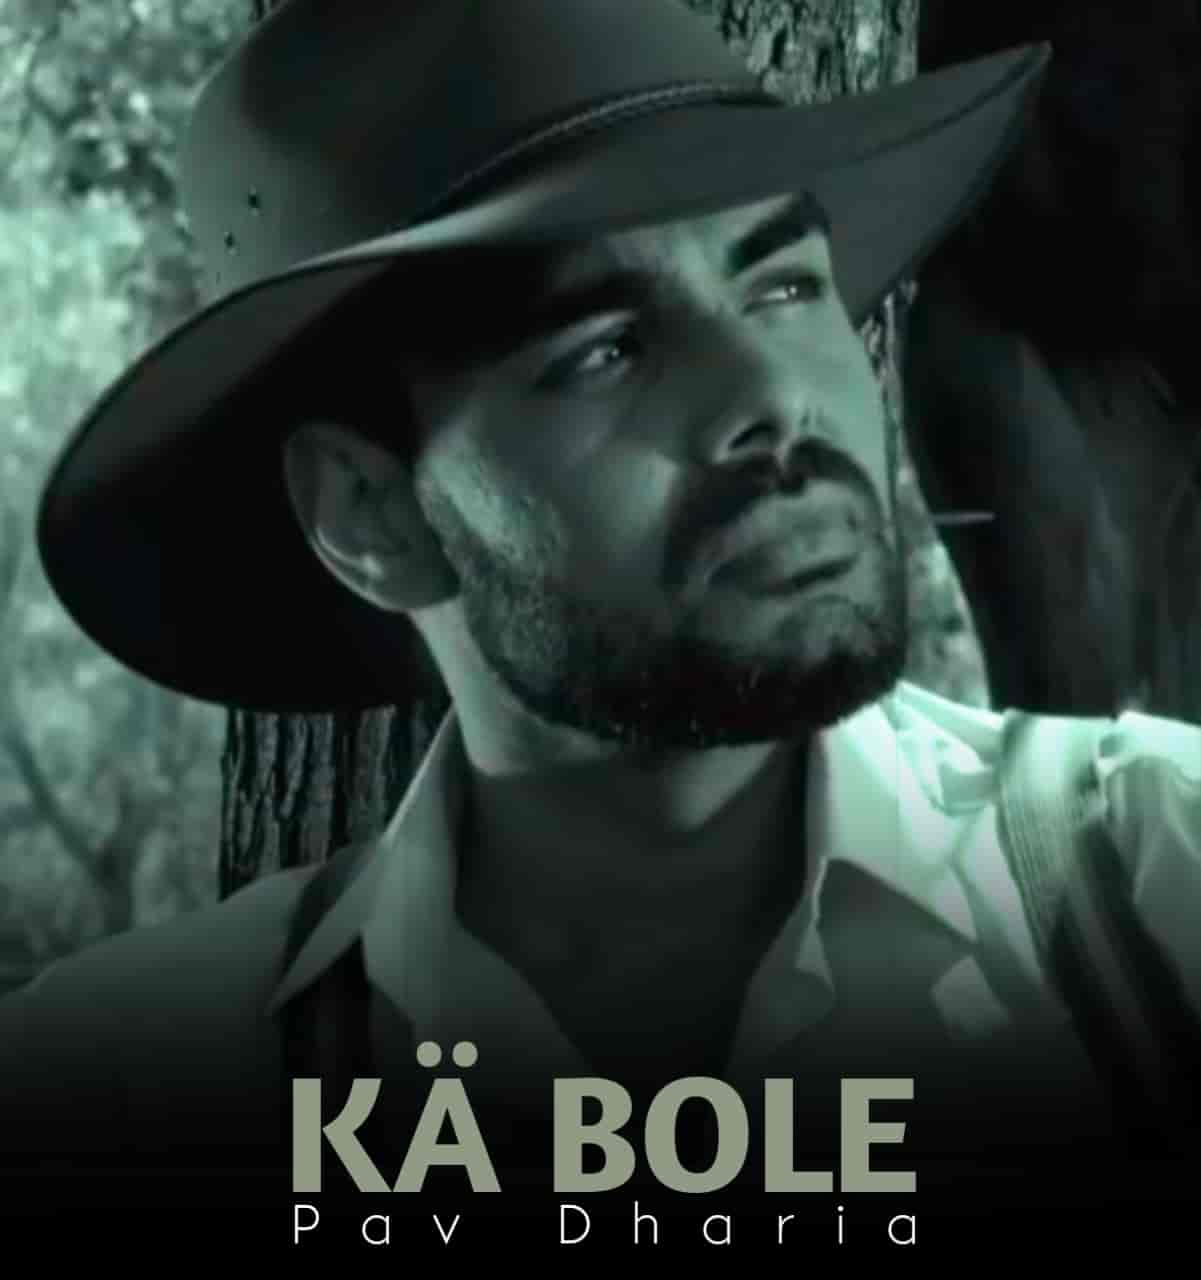 Ka Bole Punjabi Song Image Features Pav Dharia